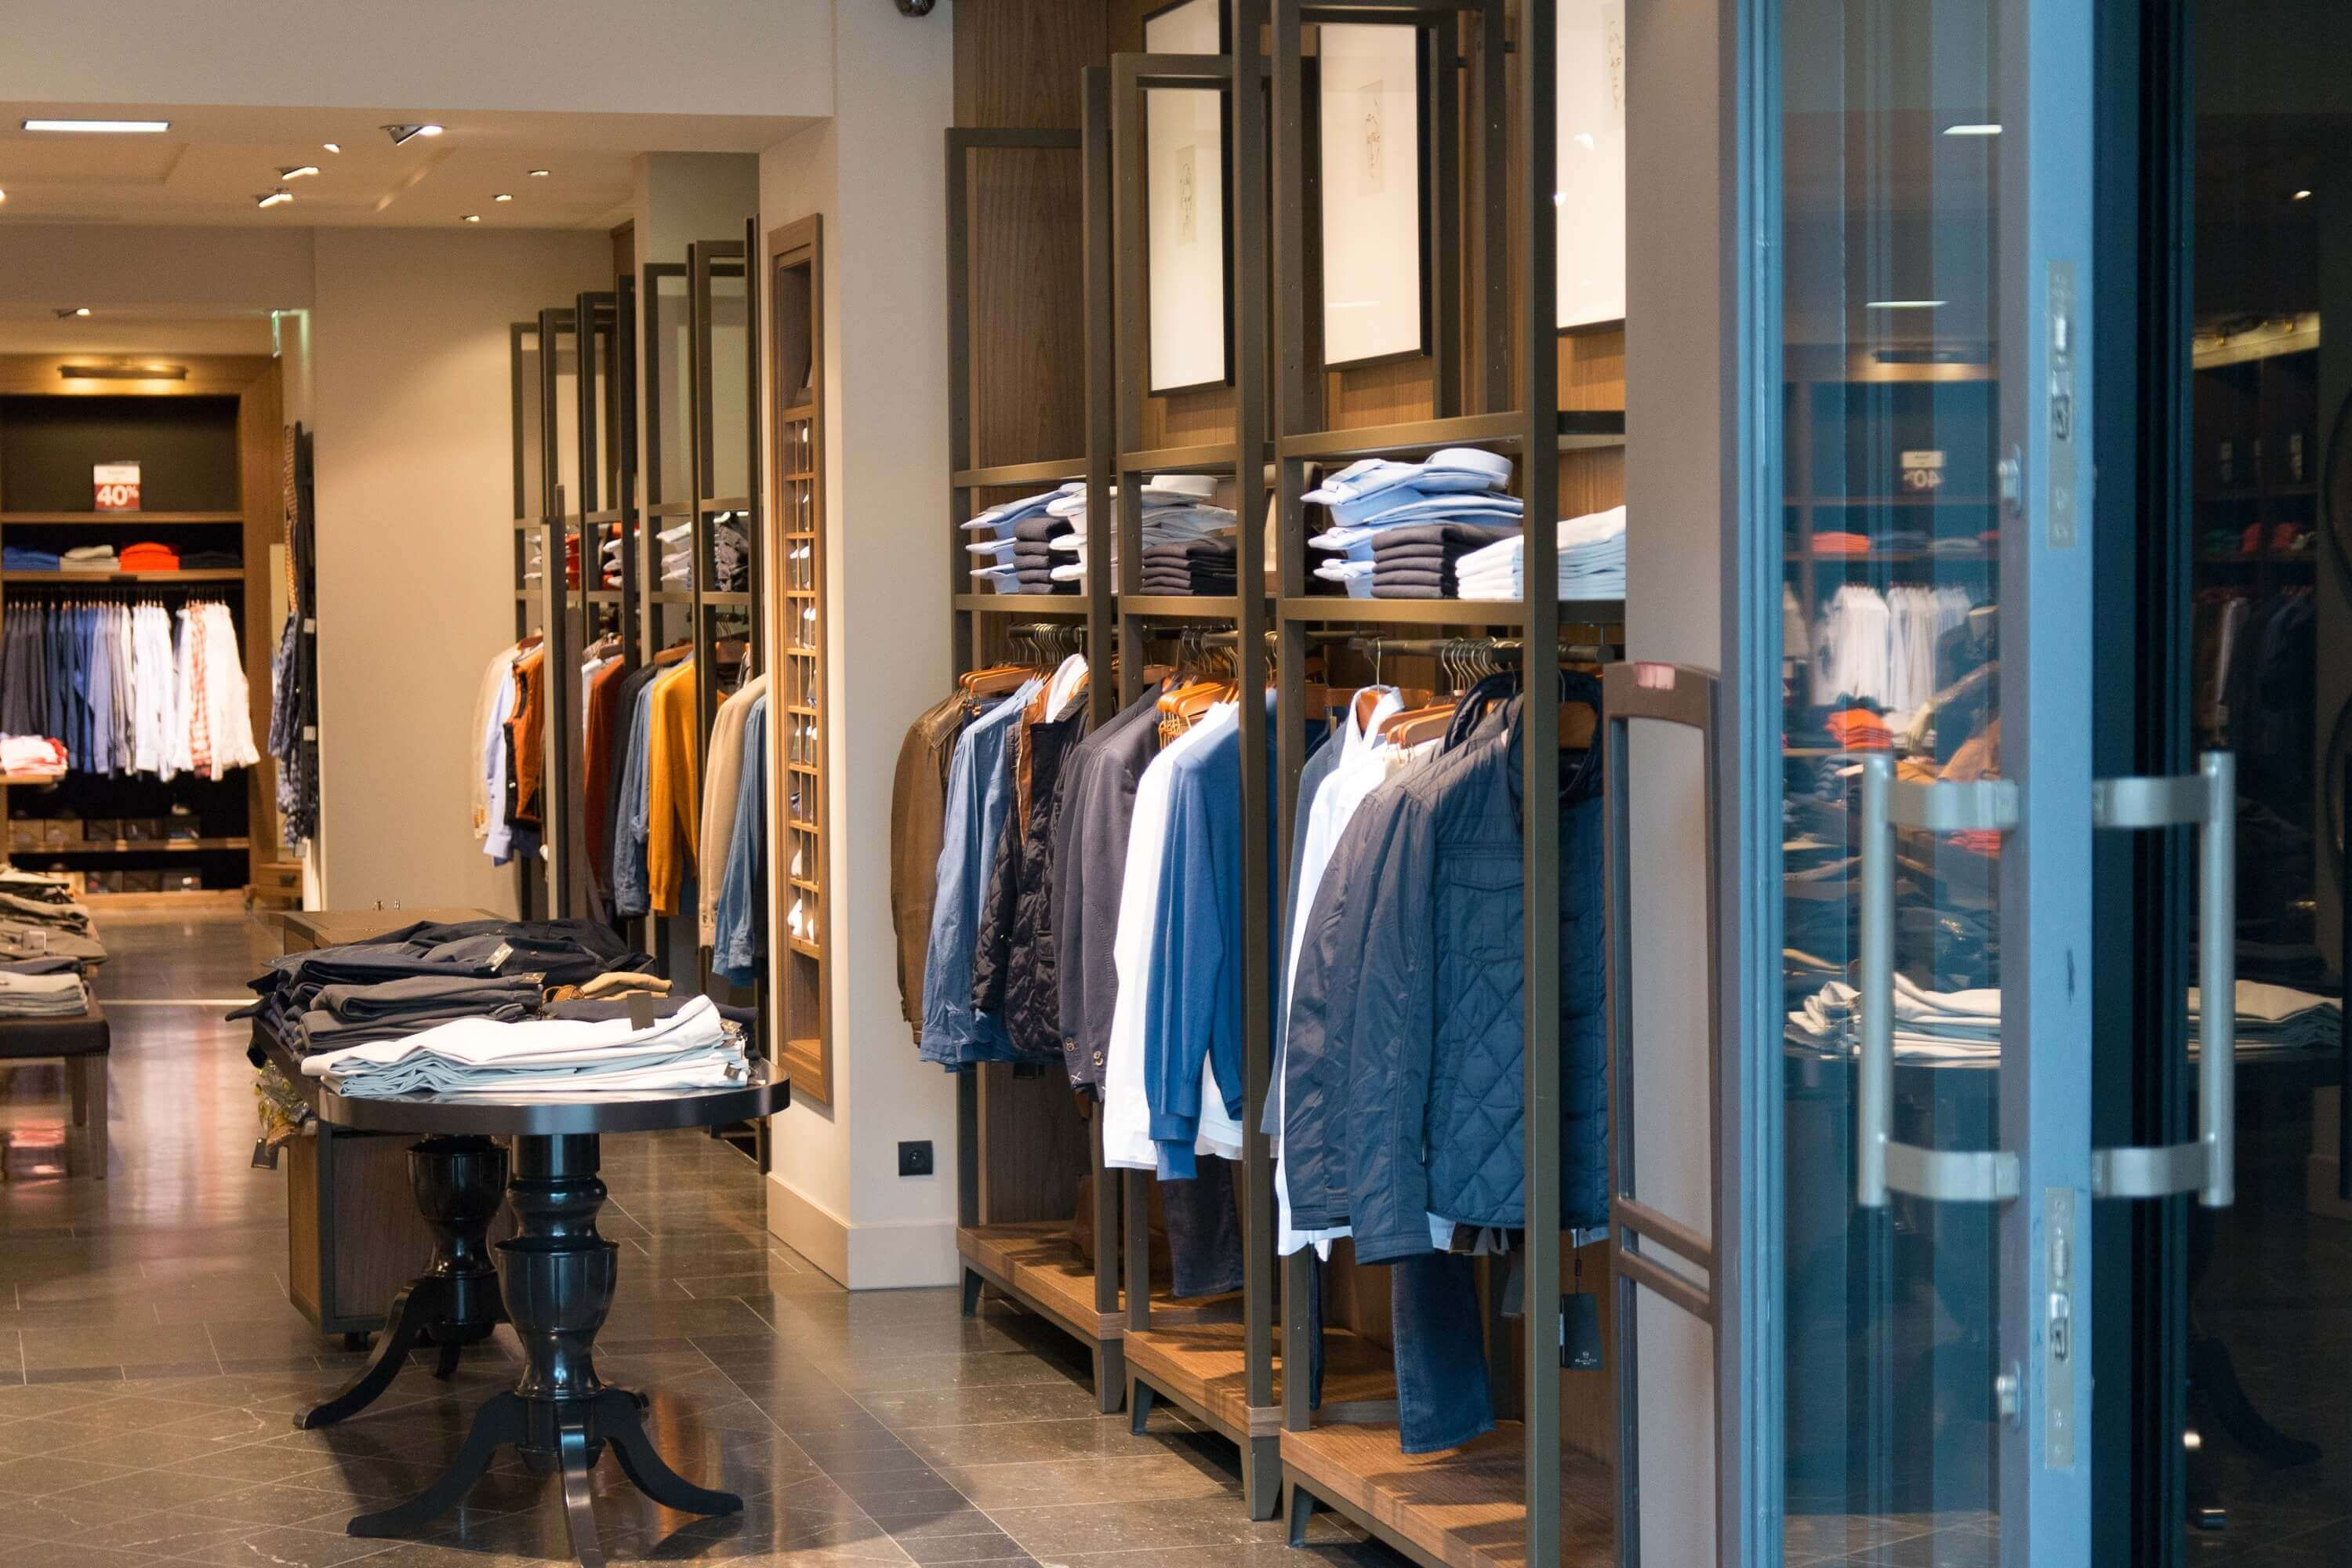 How To Design A Shop That Sells Interior Design Design News And Architecture Trends